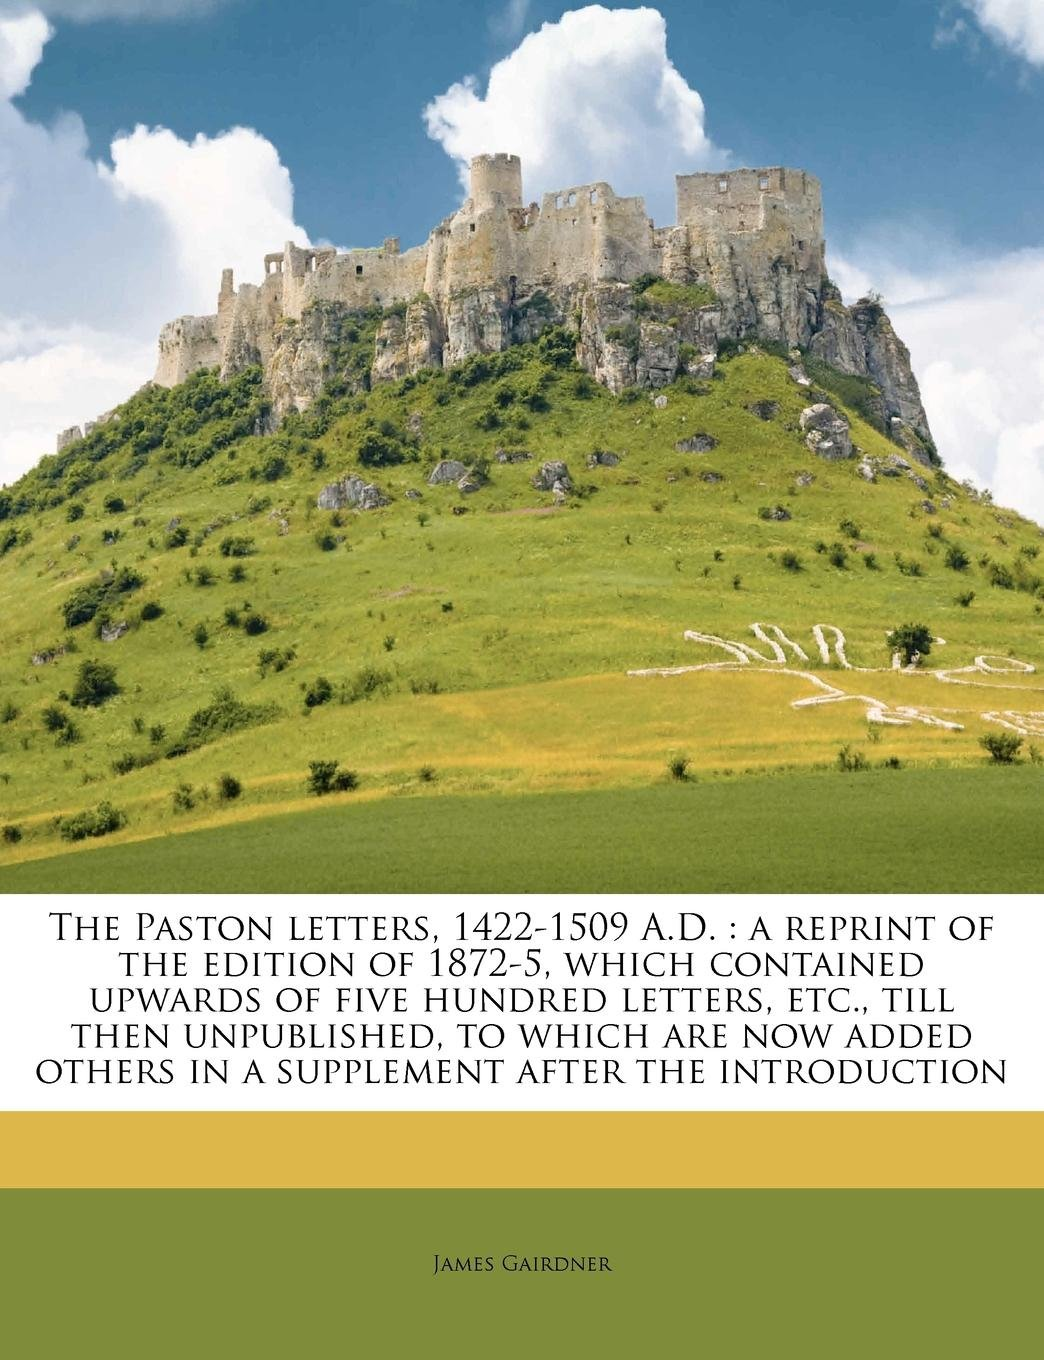 Read Online The Paston letters, 1422-1509 A.D.: a reprint of the edition of 1872-5, which contained upwards of five hundred letters, etc., till then unpublished, ... others in a supplement after the introduction PDF